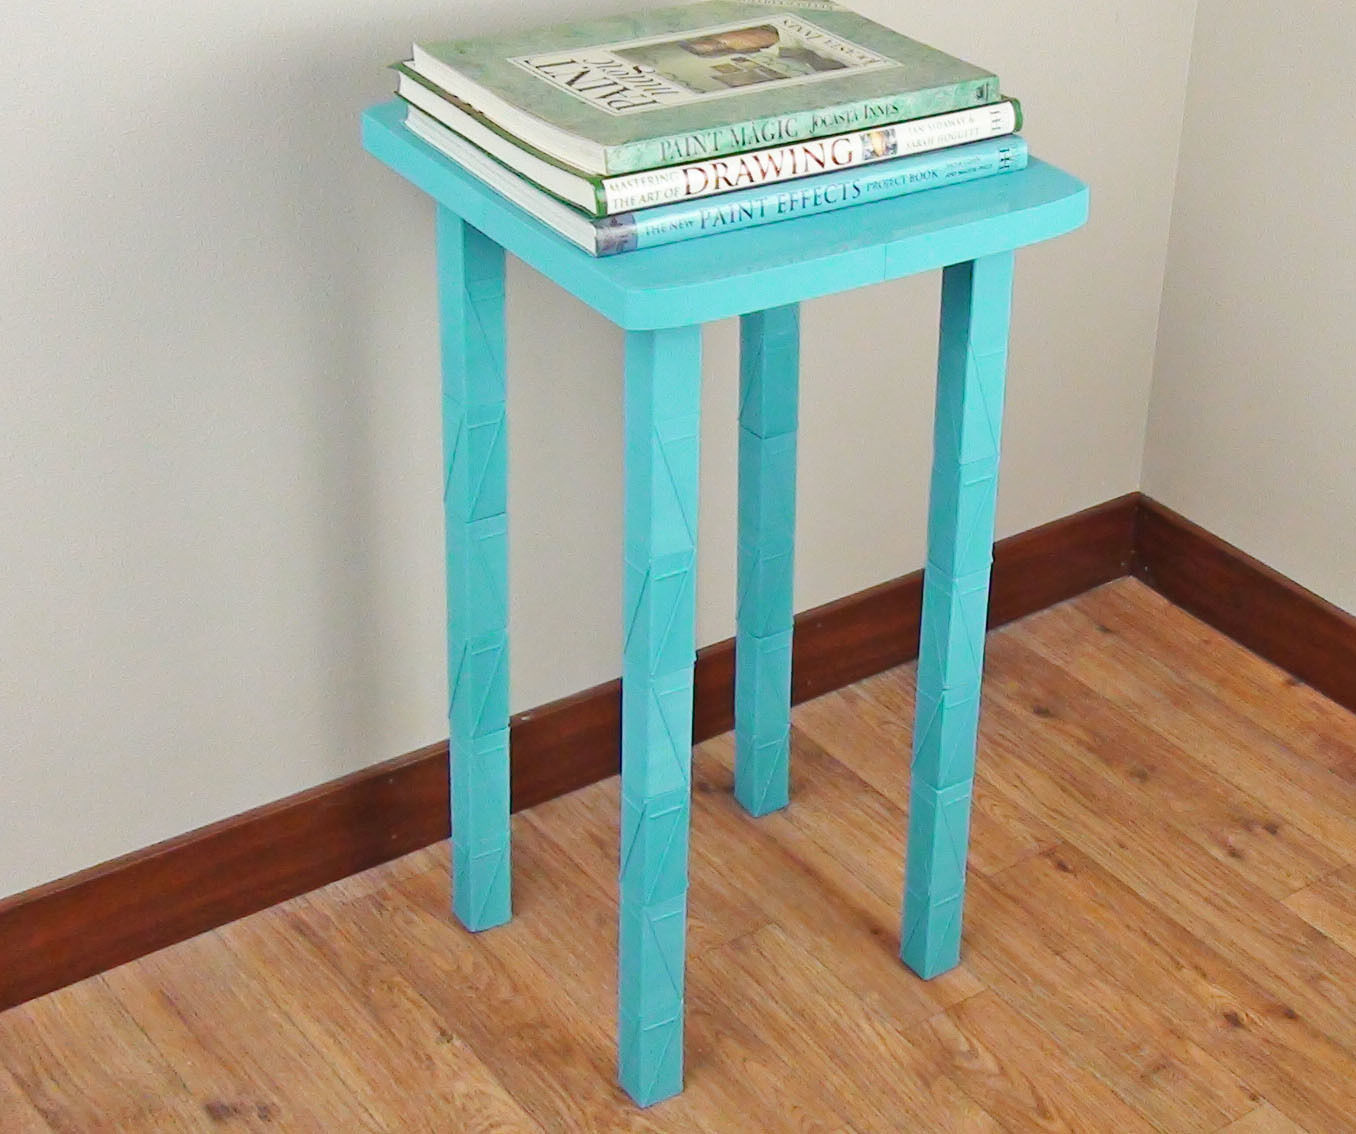 Square End Table - Life Sized Furniture